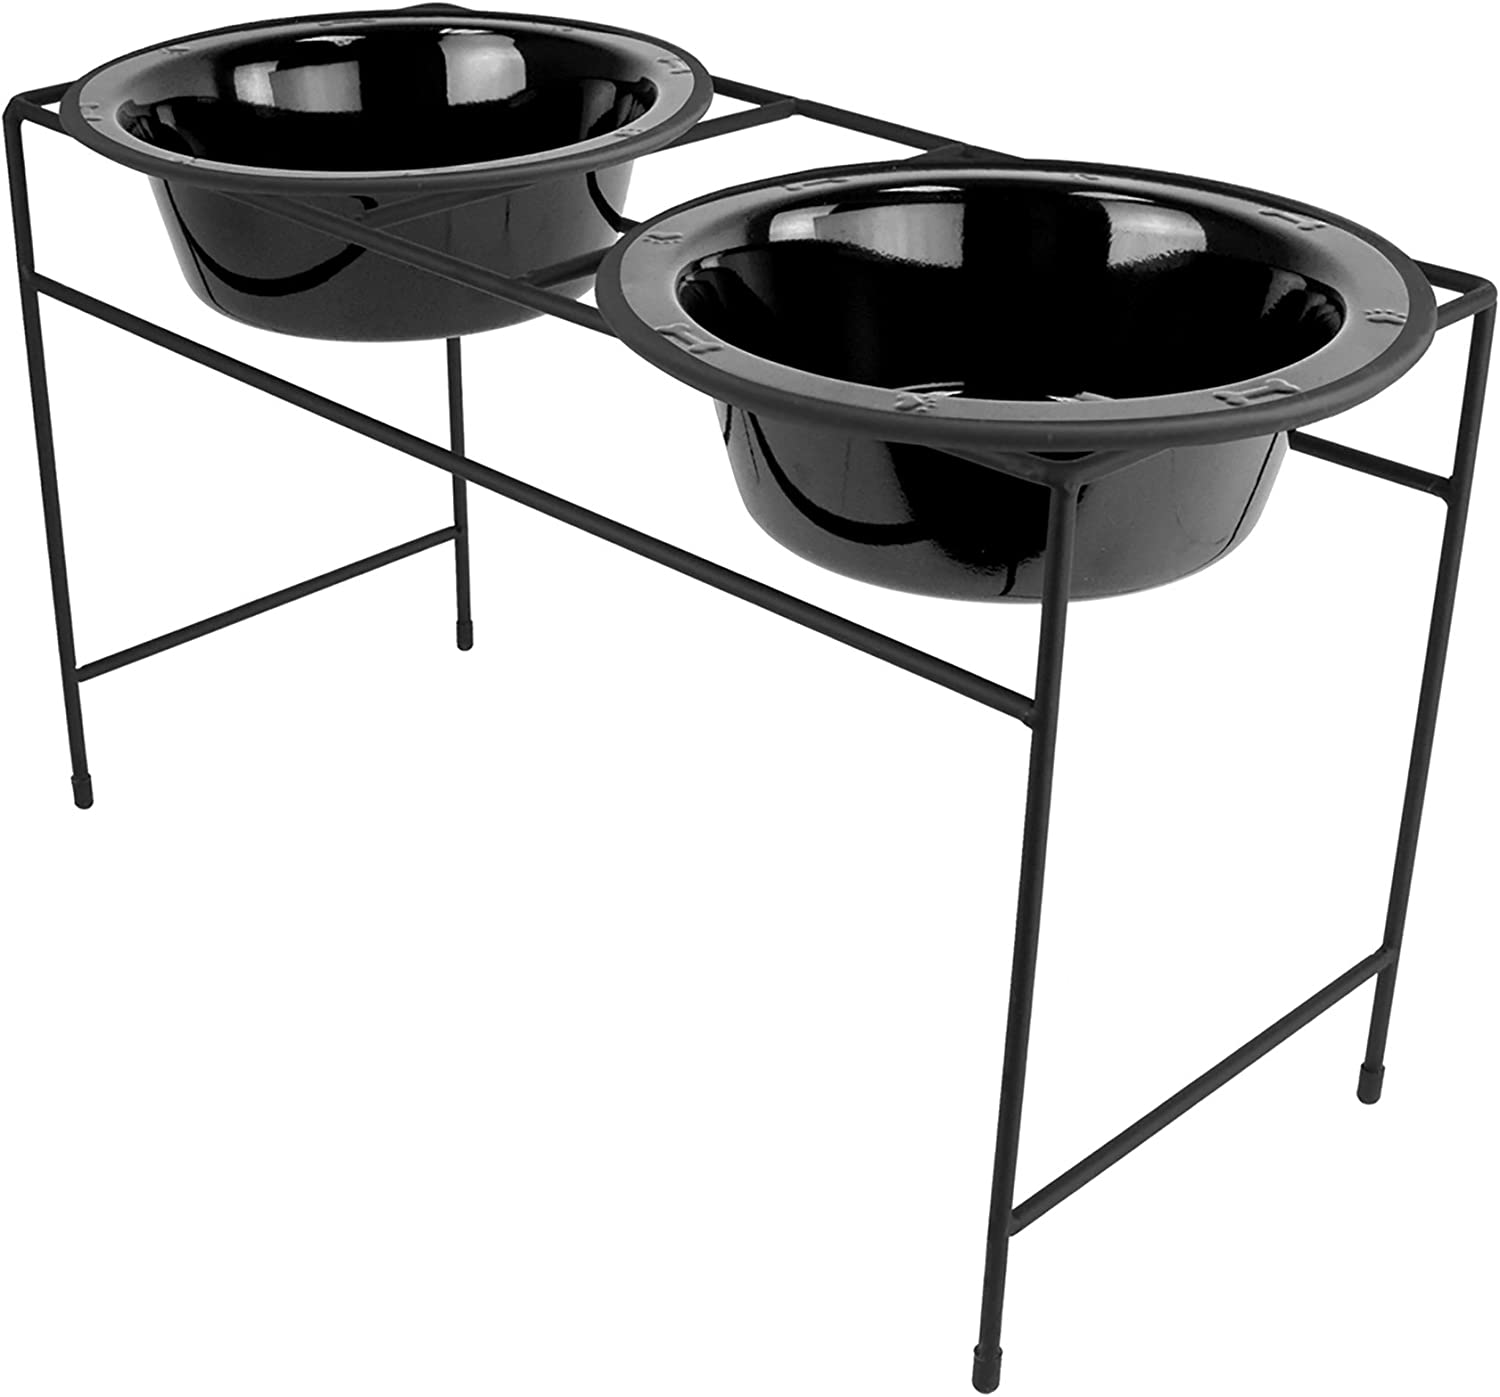 Platinum Pets Double Diner Feeder with Stainless Steel Dog Bowls